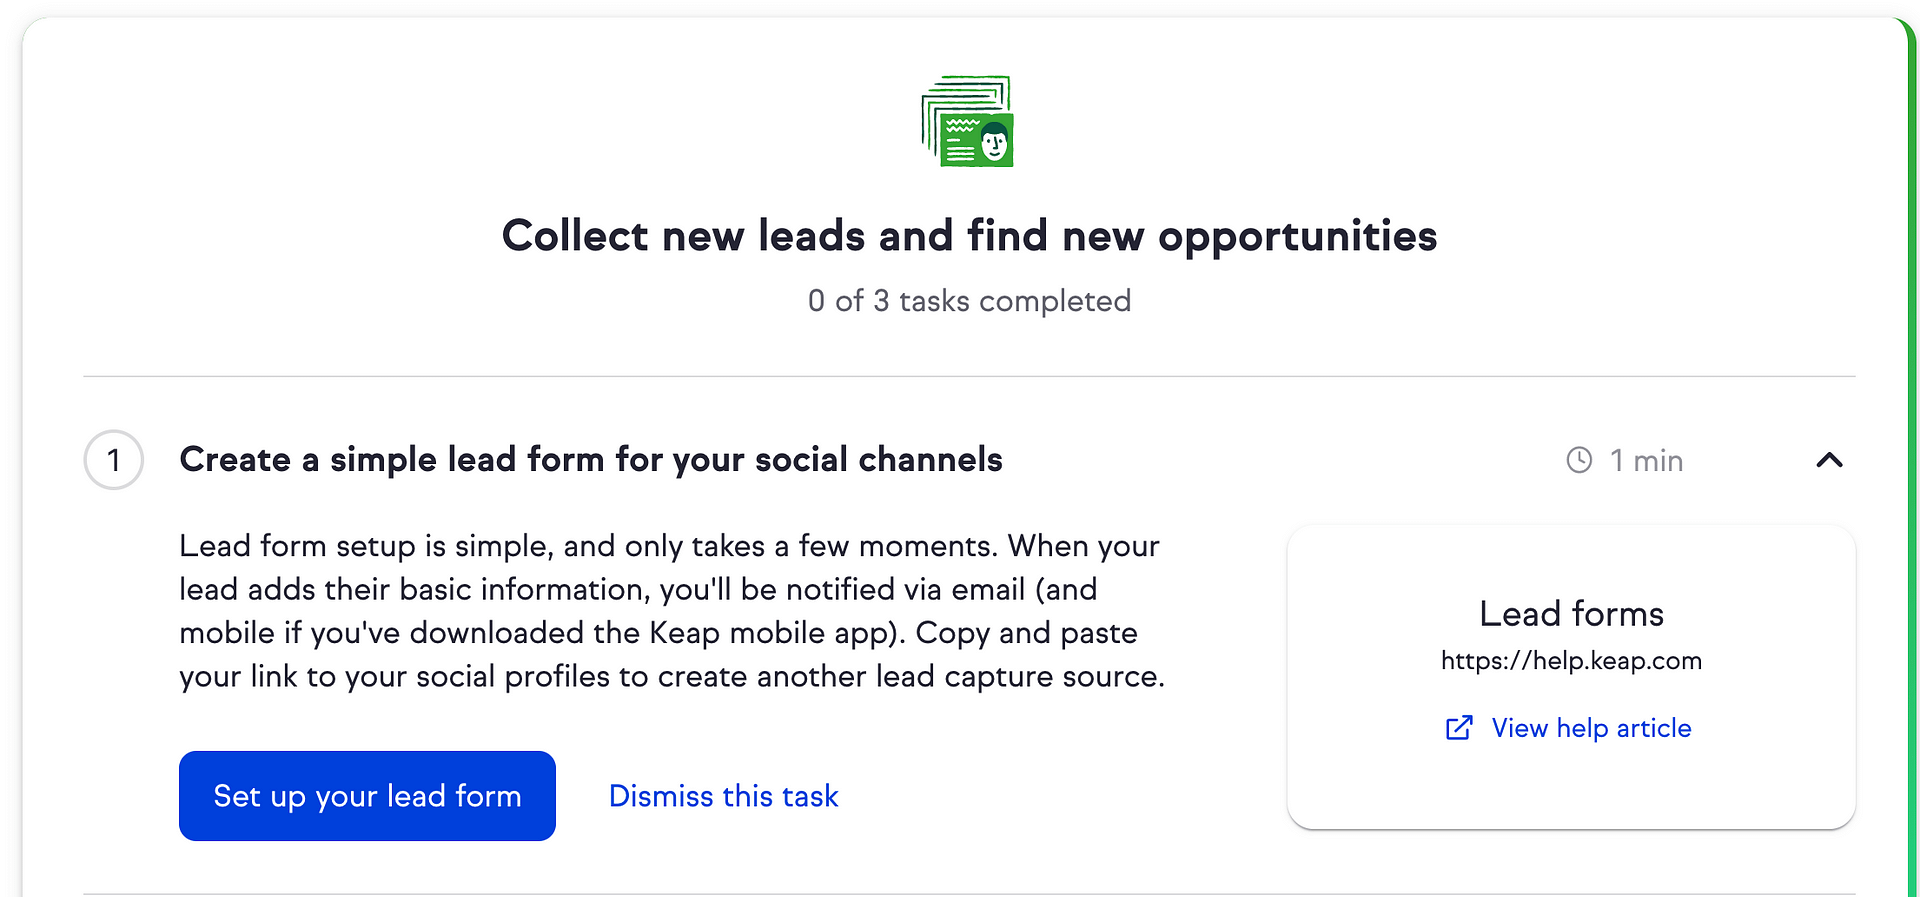 Lead form setup is easy and only takes a few minutes. When your lead inputs their contact information into a form, you'll receive a notification via email (and mobile if you are using the Keap mobile app). You can also share your link to your social profiles to launch another lead capture source.